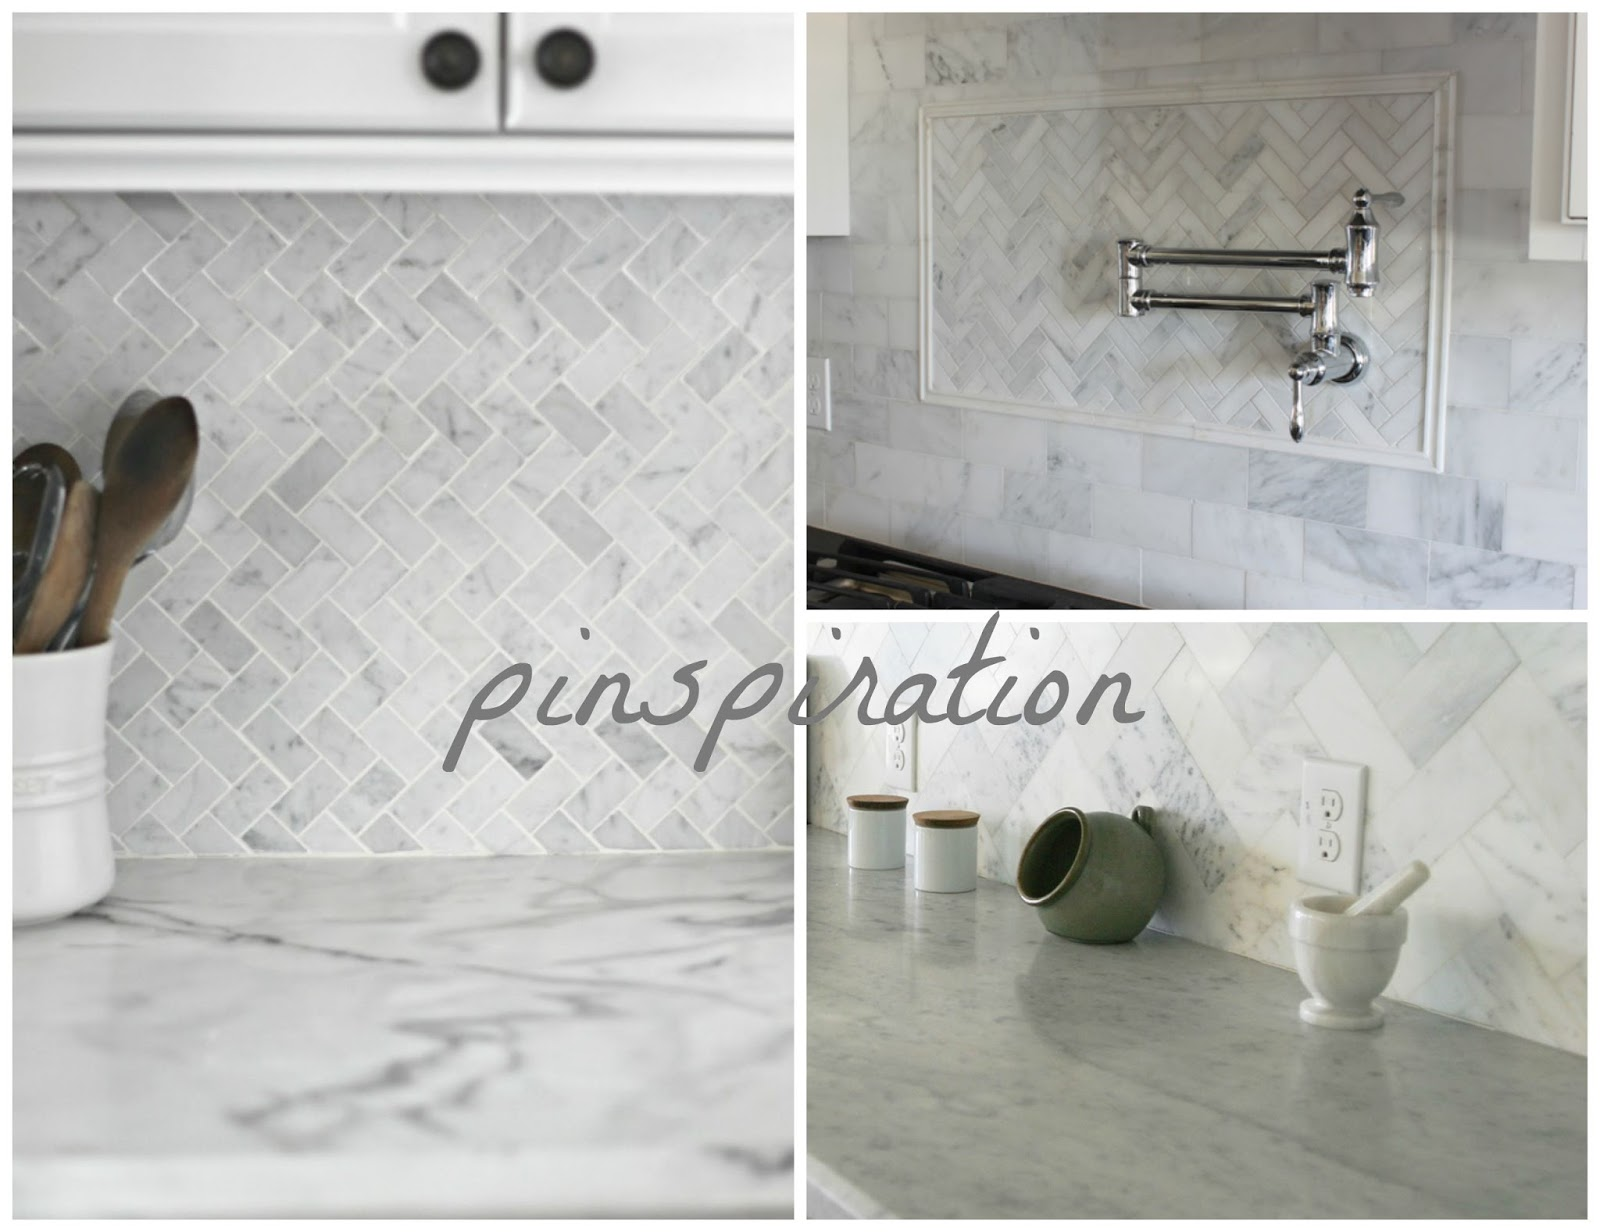 40 Carrara Marble Herringbone Inspired Backsplash